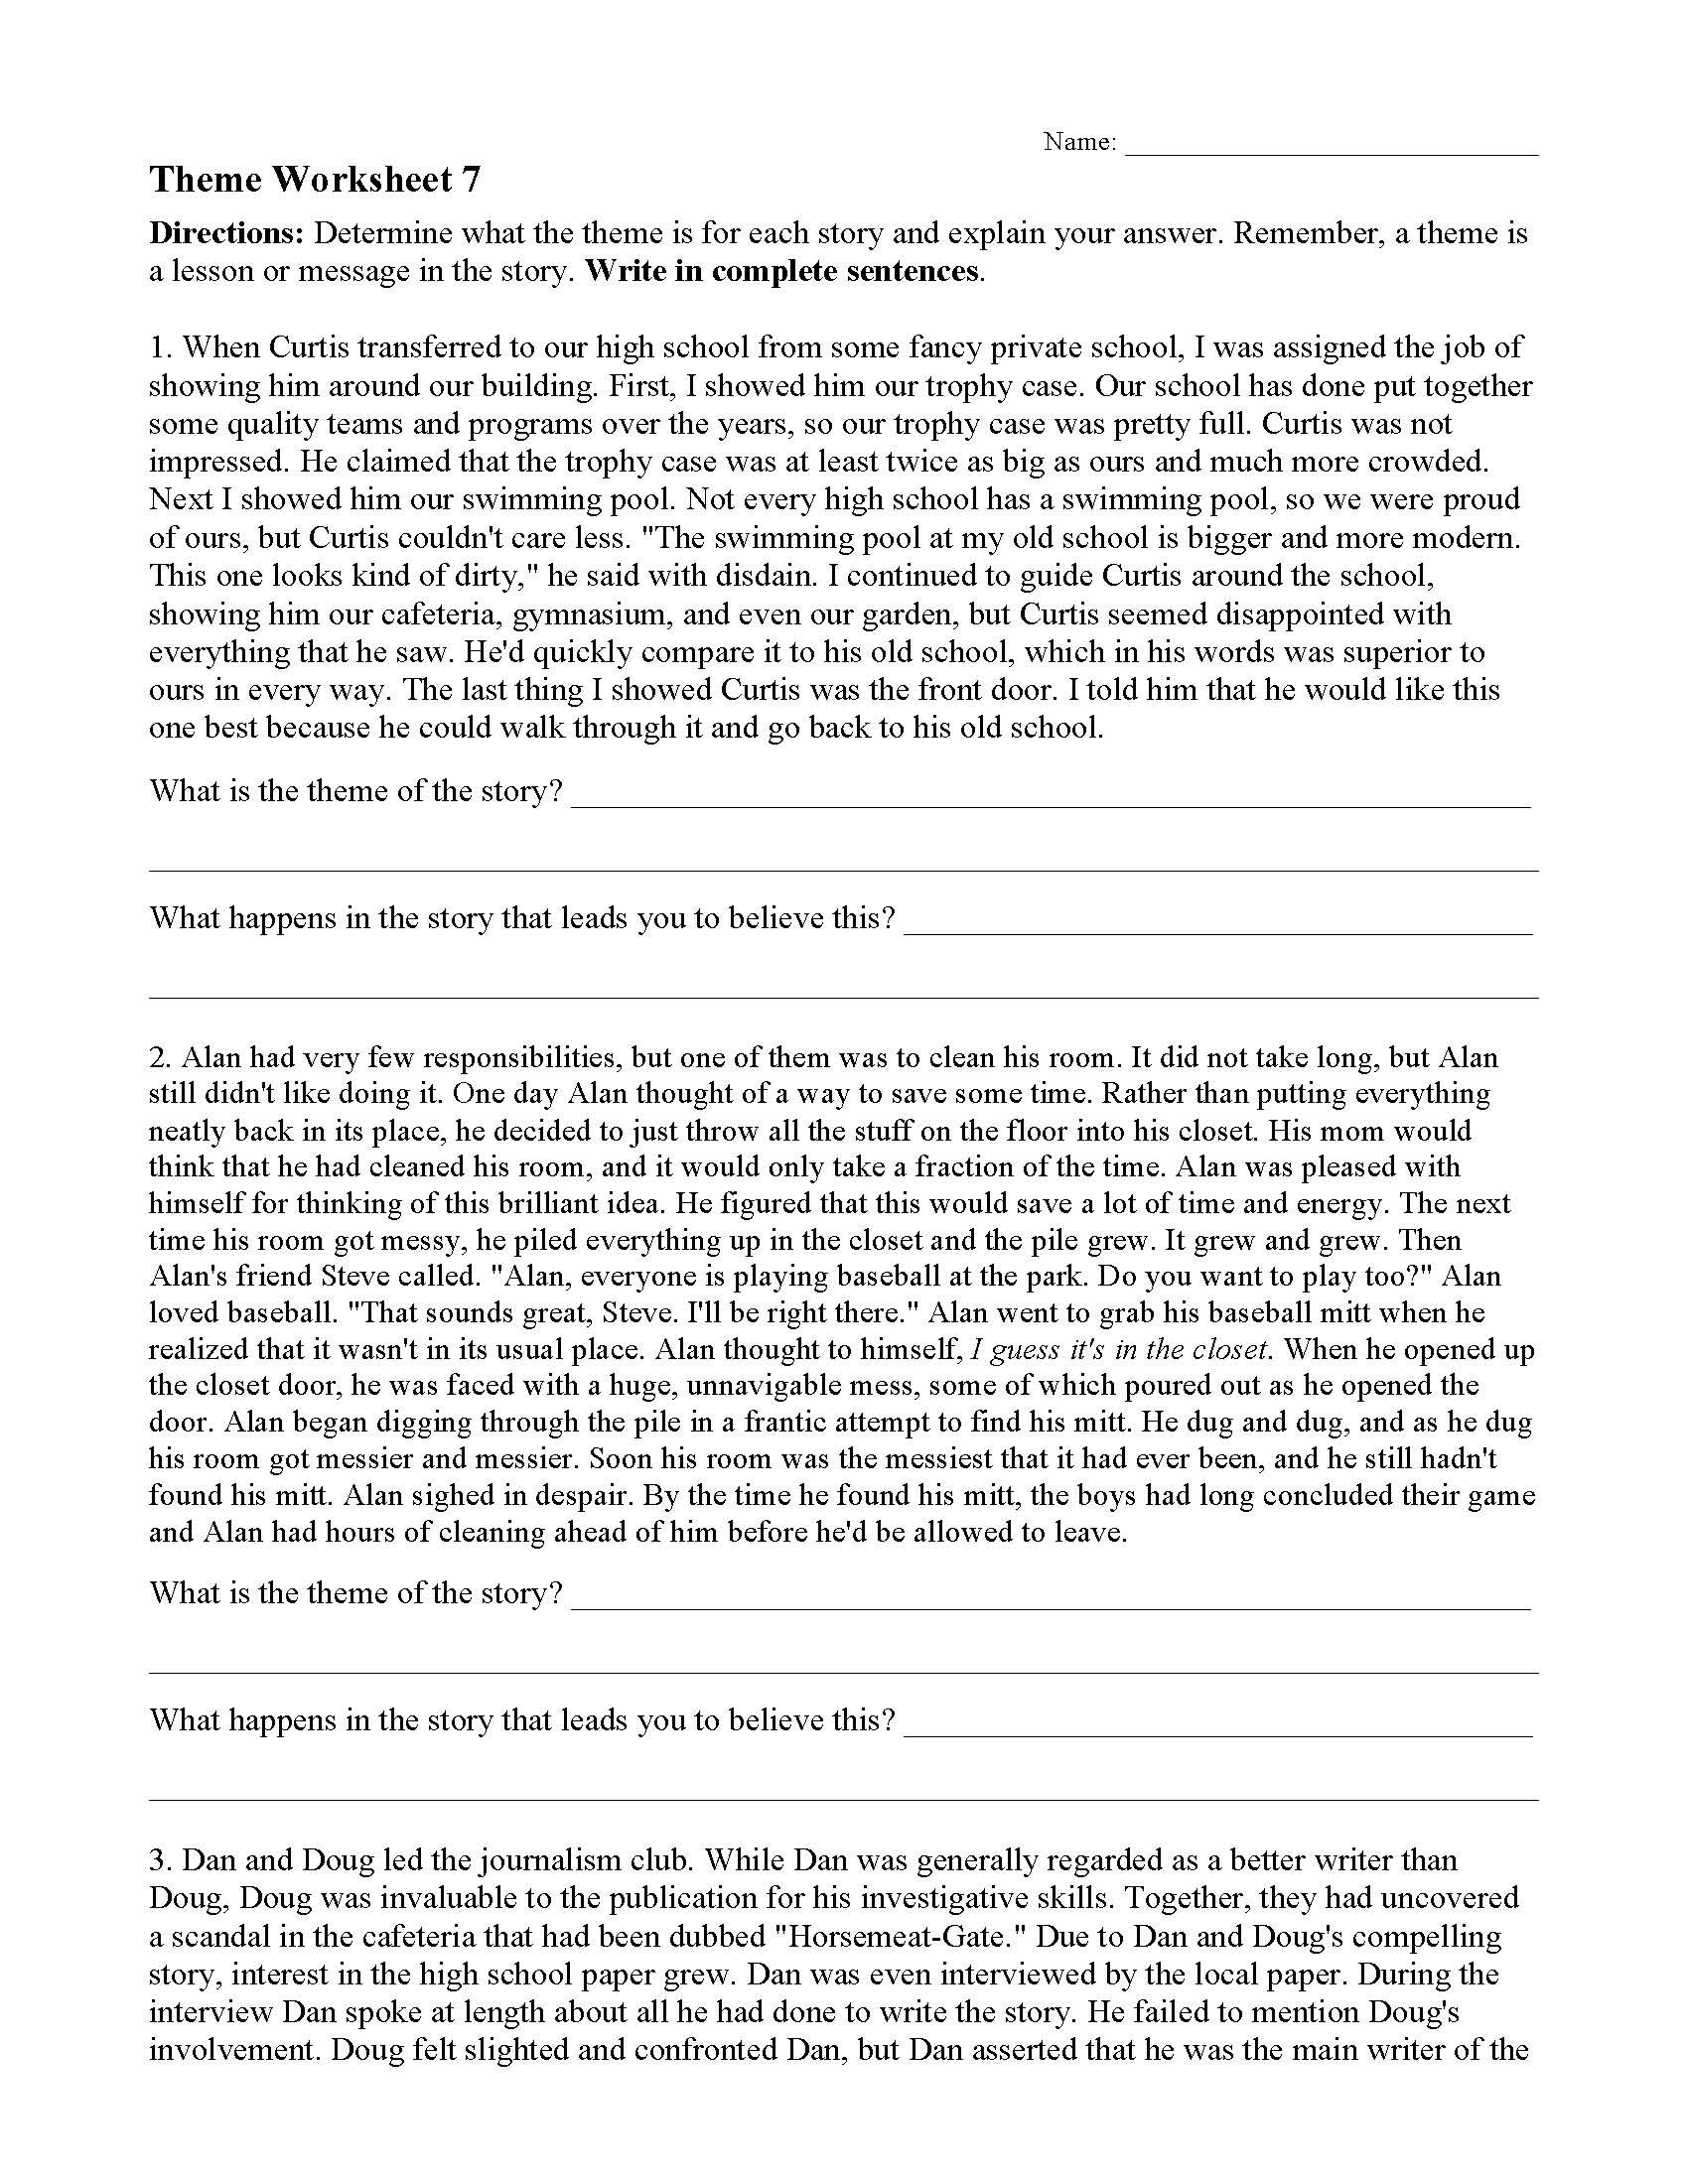 Theme or Author s Message Worksheets